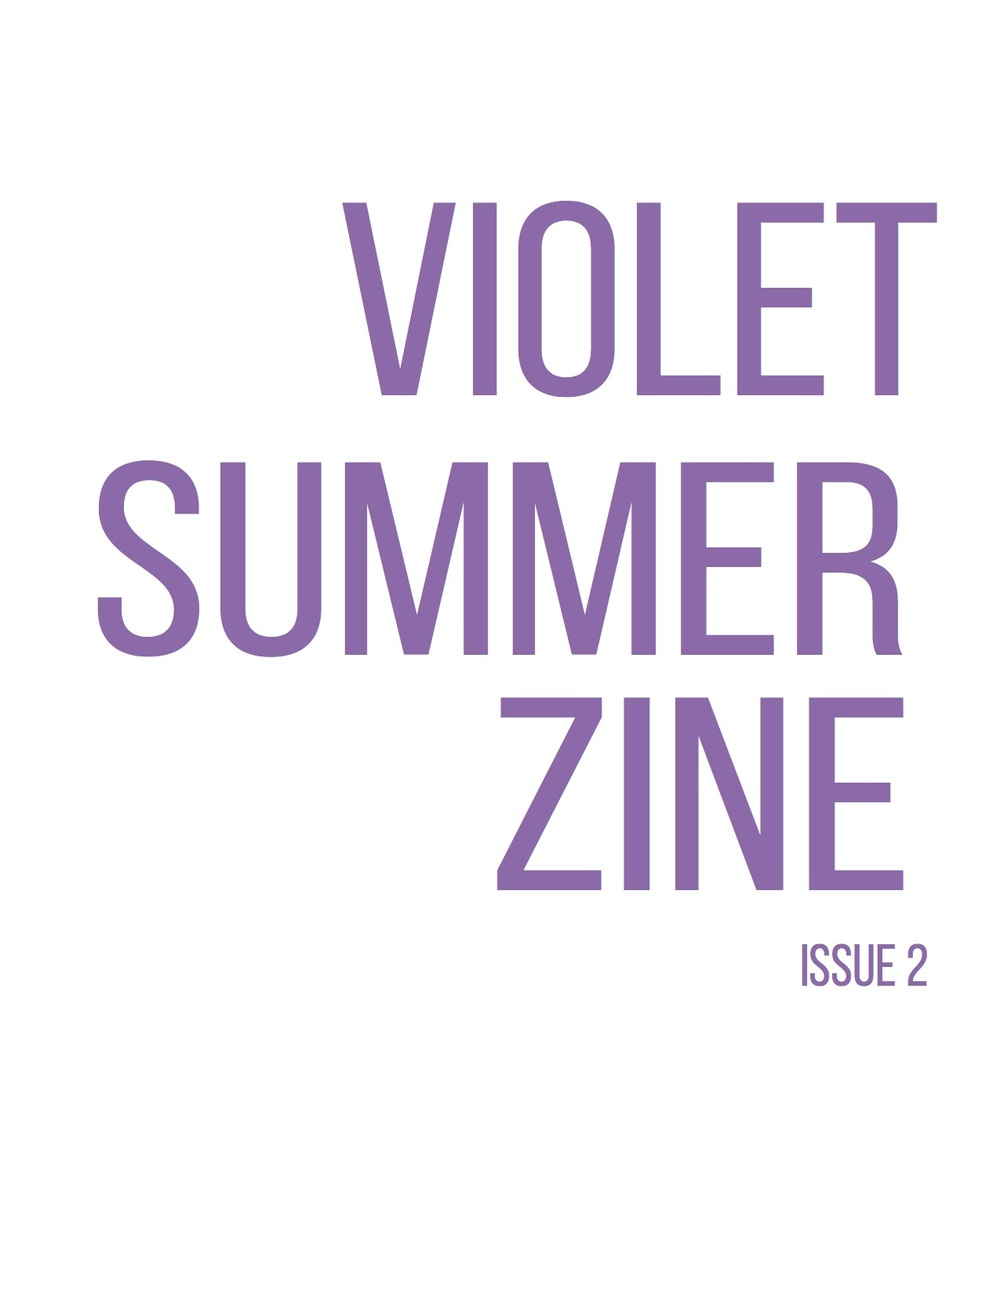 Editor's Note: So excited to finally have started production on #VioletSummerZine, Issue 2 with my awesome collaborators!